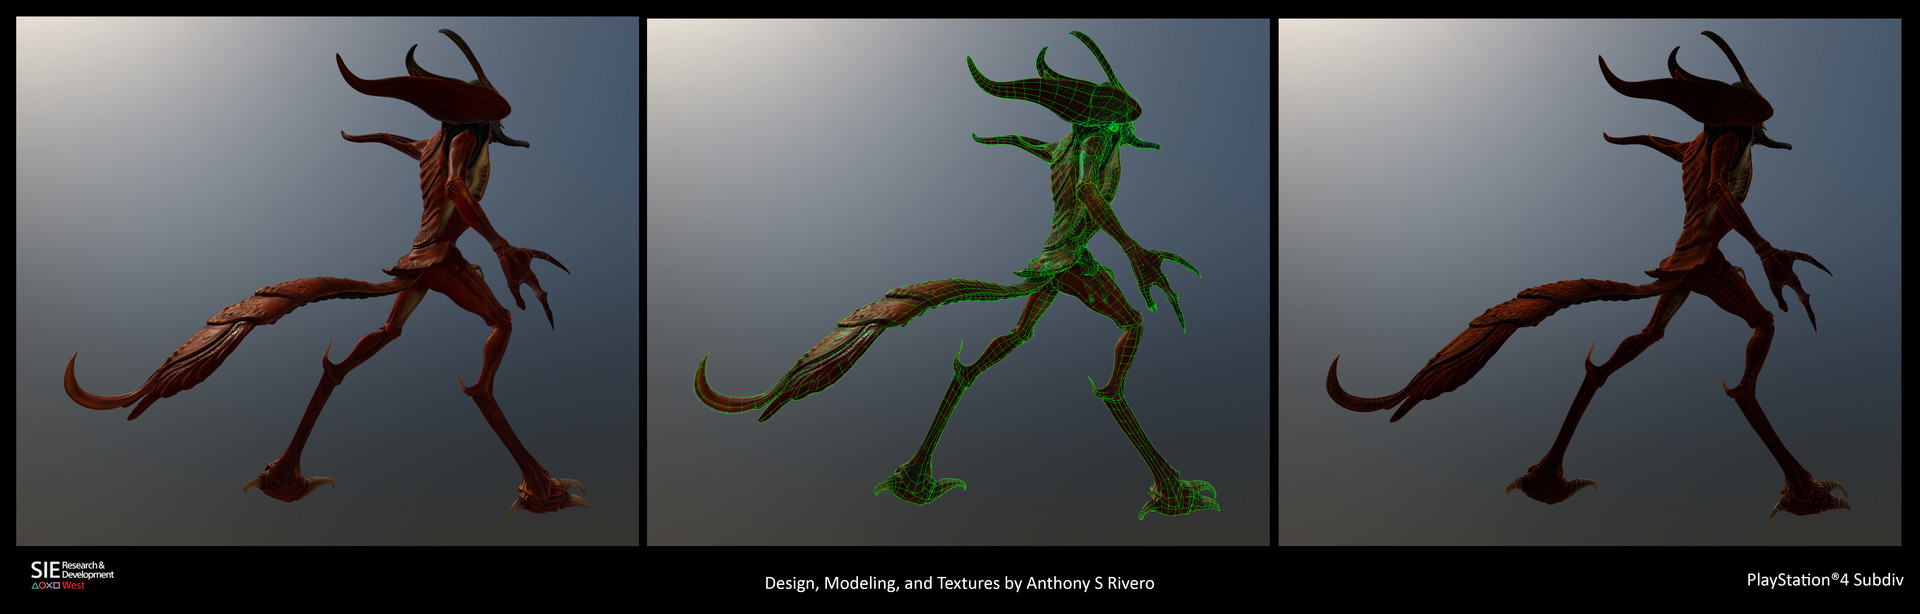 Anthony rivero insectdemon subd turnaround 02 copy